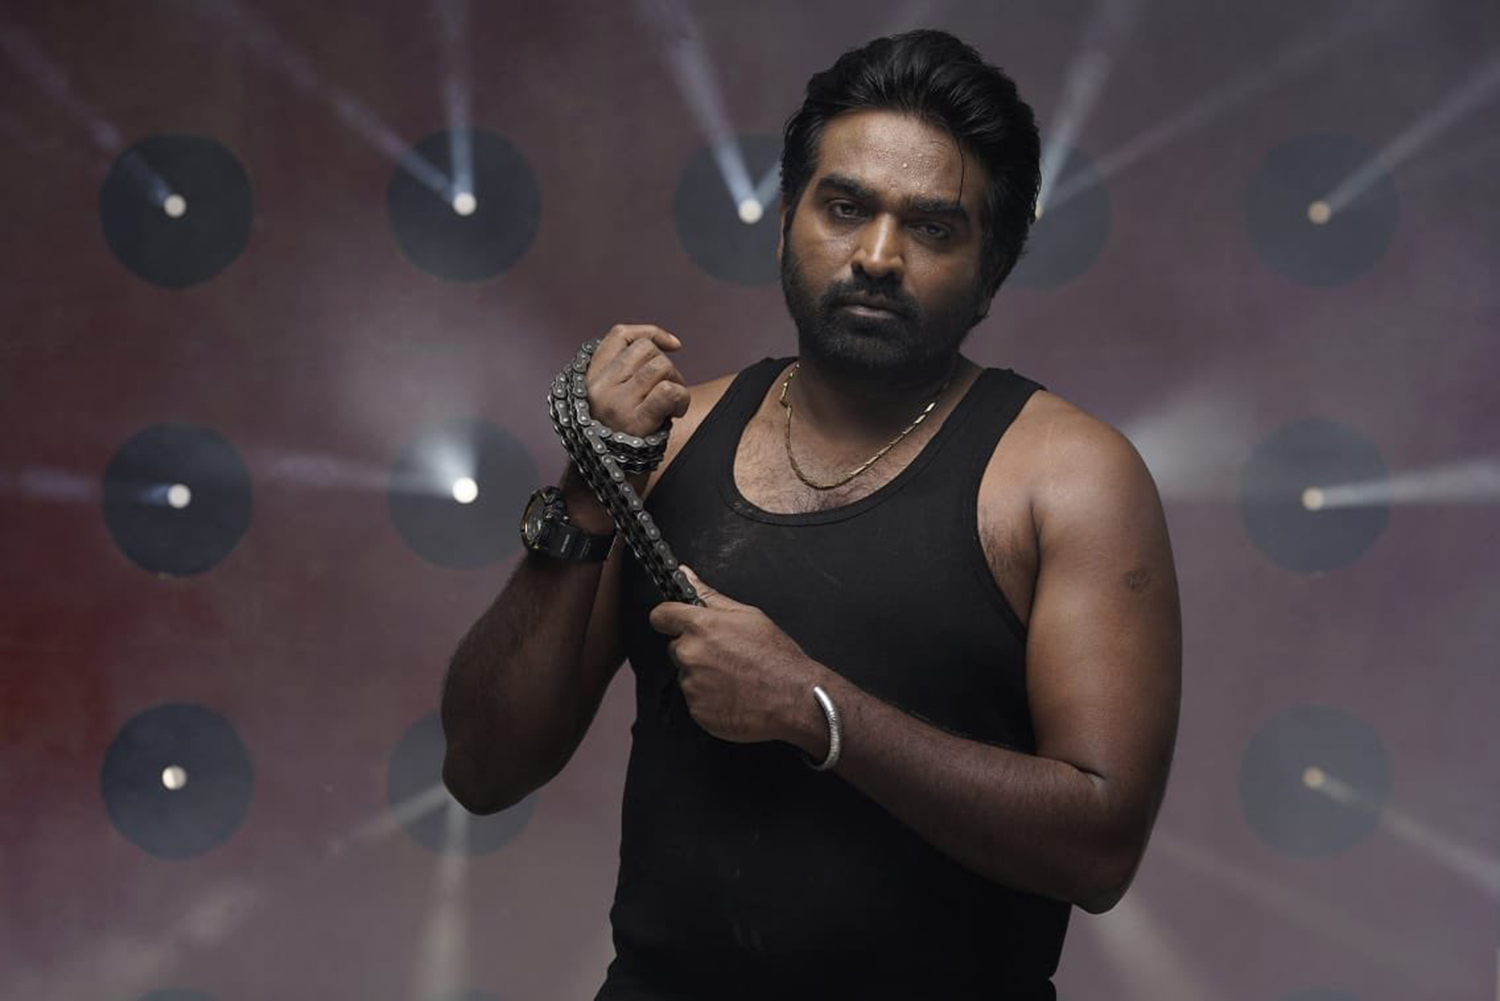 Tughlaq Durbar movie,Tughlaq Durbar movie stills,Tughlaq Durbar vijay sethupathi stills,vijay sethupathi new movie stills,vijay sethupathi new look images,vijay sethupathi latest photos,vijay sethupathi latest stylish photos,vijay sethupathi mass movie stills,new tamil cinema,vijay sethupathi in Tughlaq Durbar